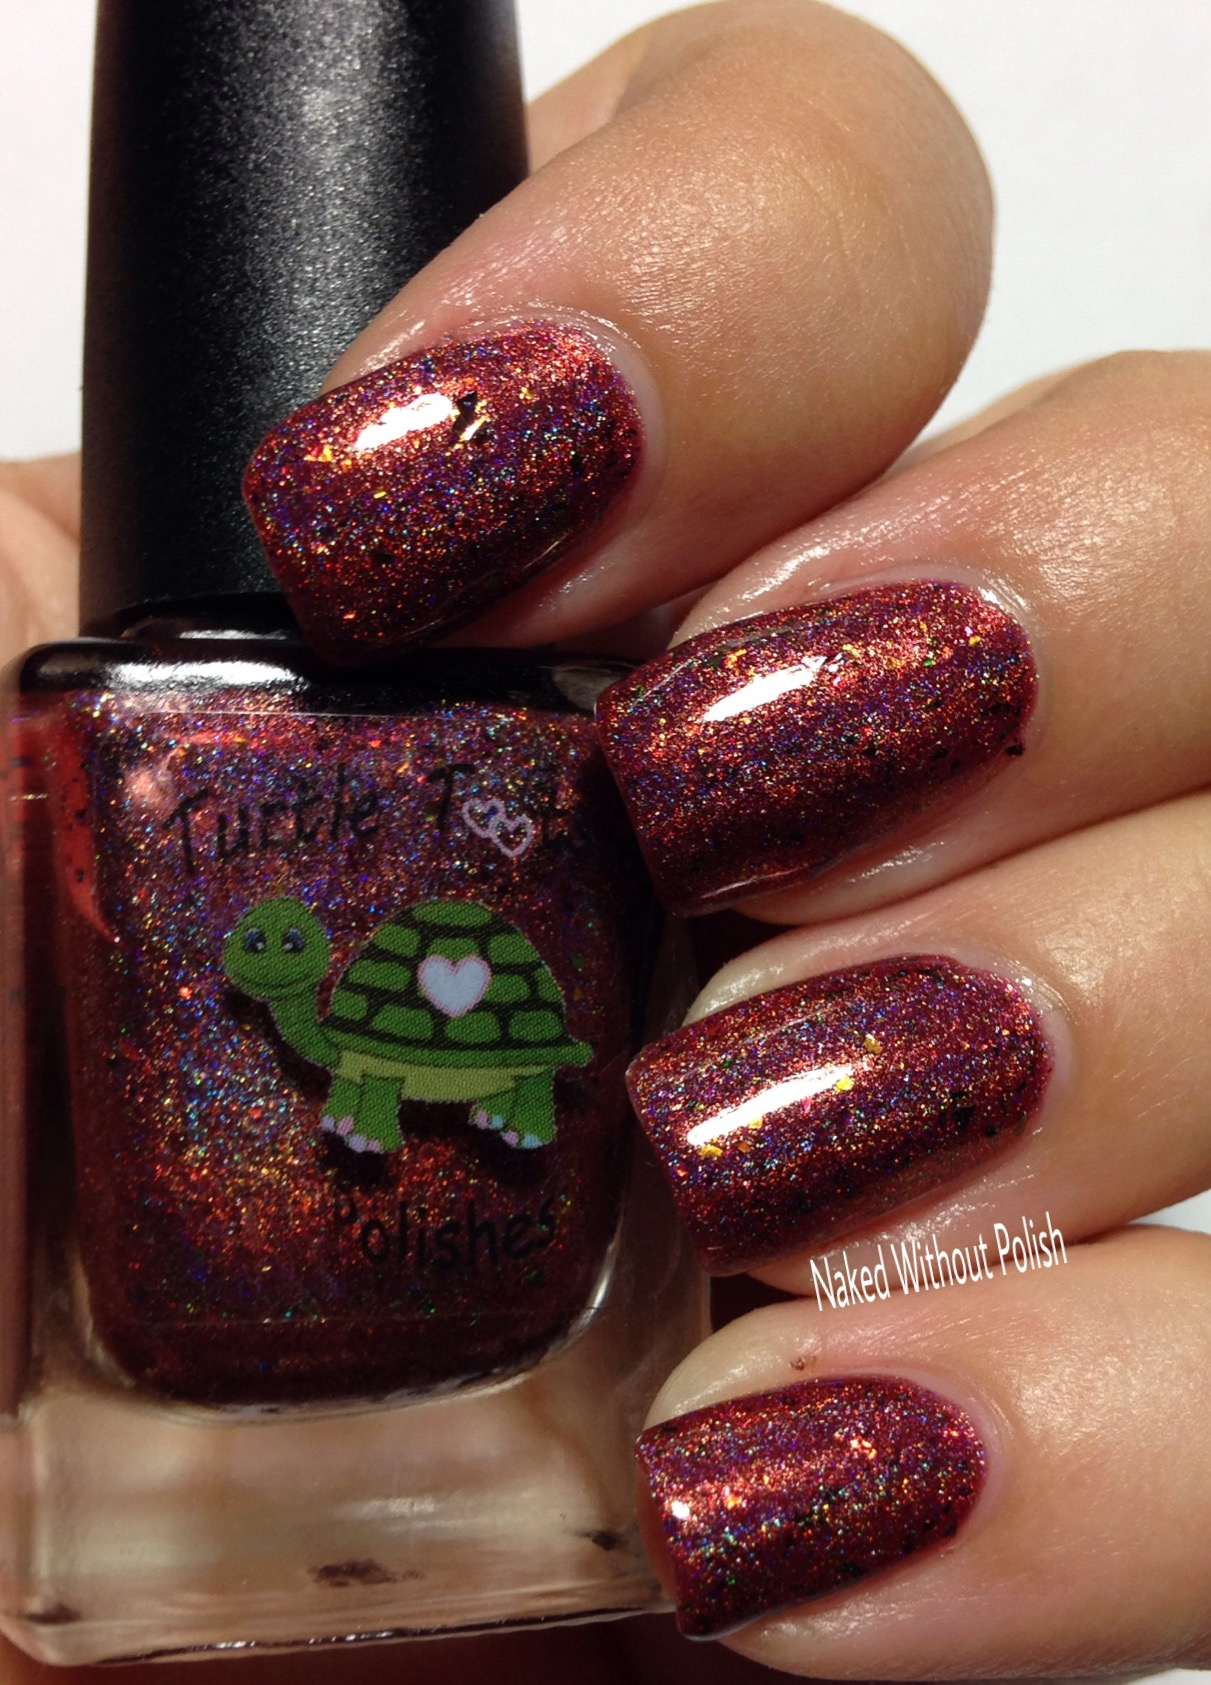 Polish-Pickup-Turtle-Tootsie-Polishes-Just-Around-the-Bend-11